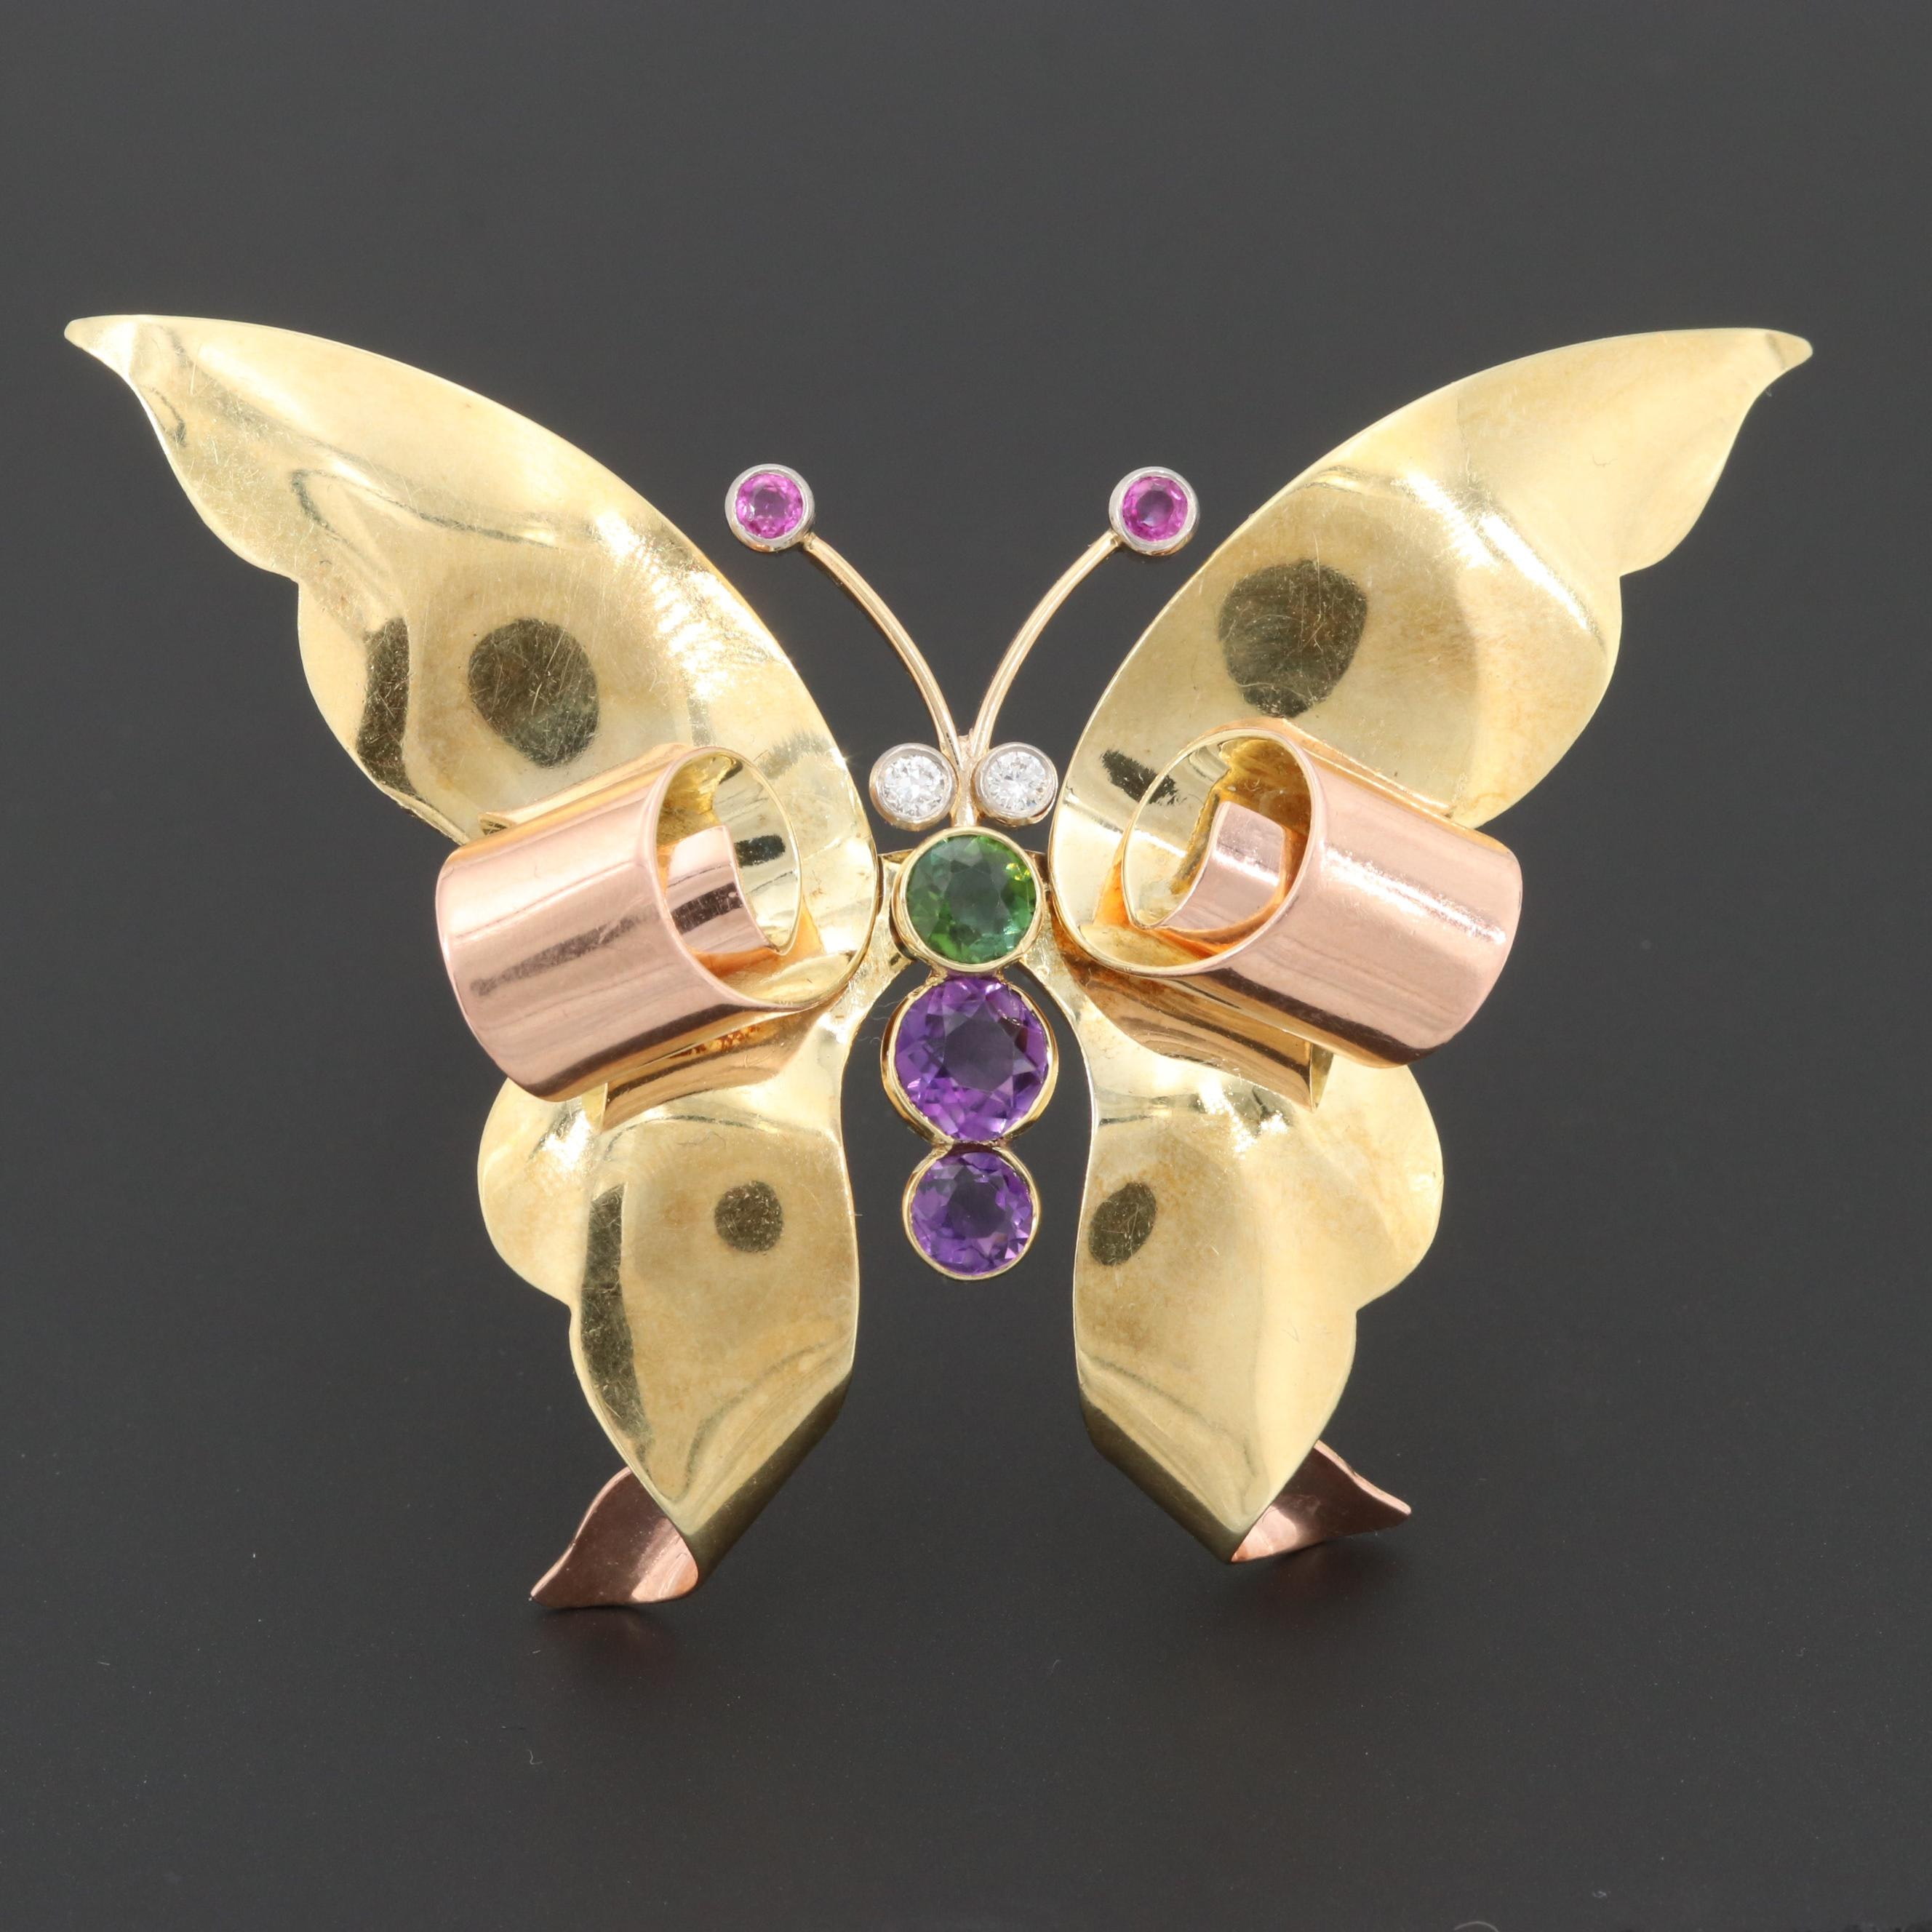 Retro 14K Gold Diamond, Green Tourmaline, Ruby and Amethyst Butterfly Brooch